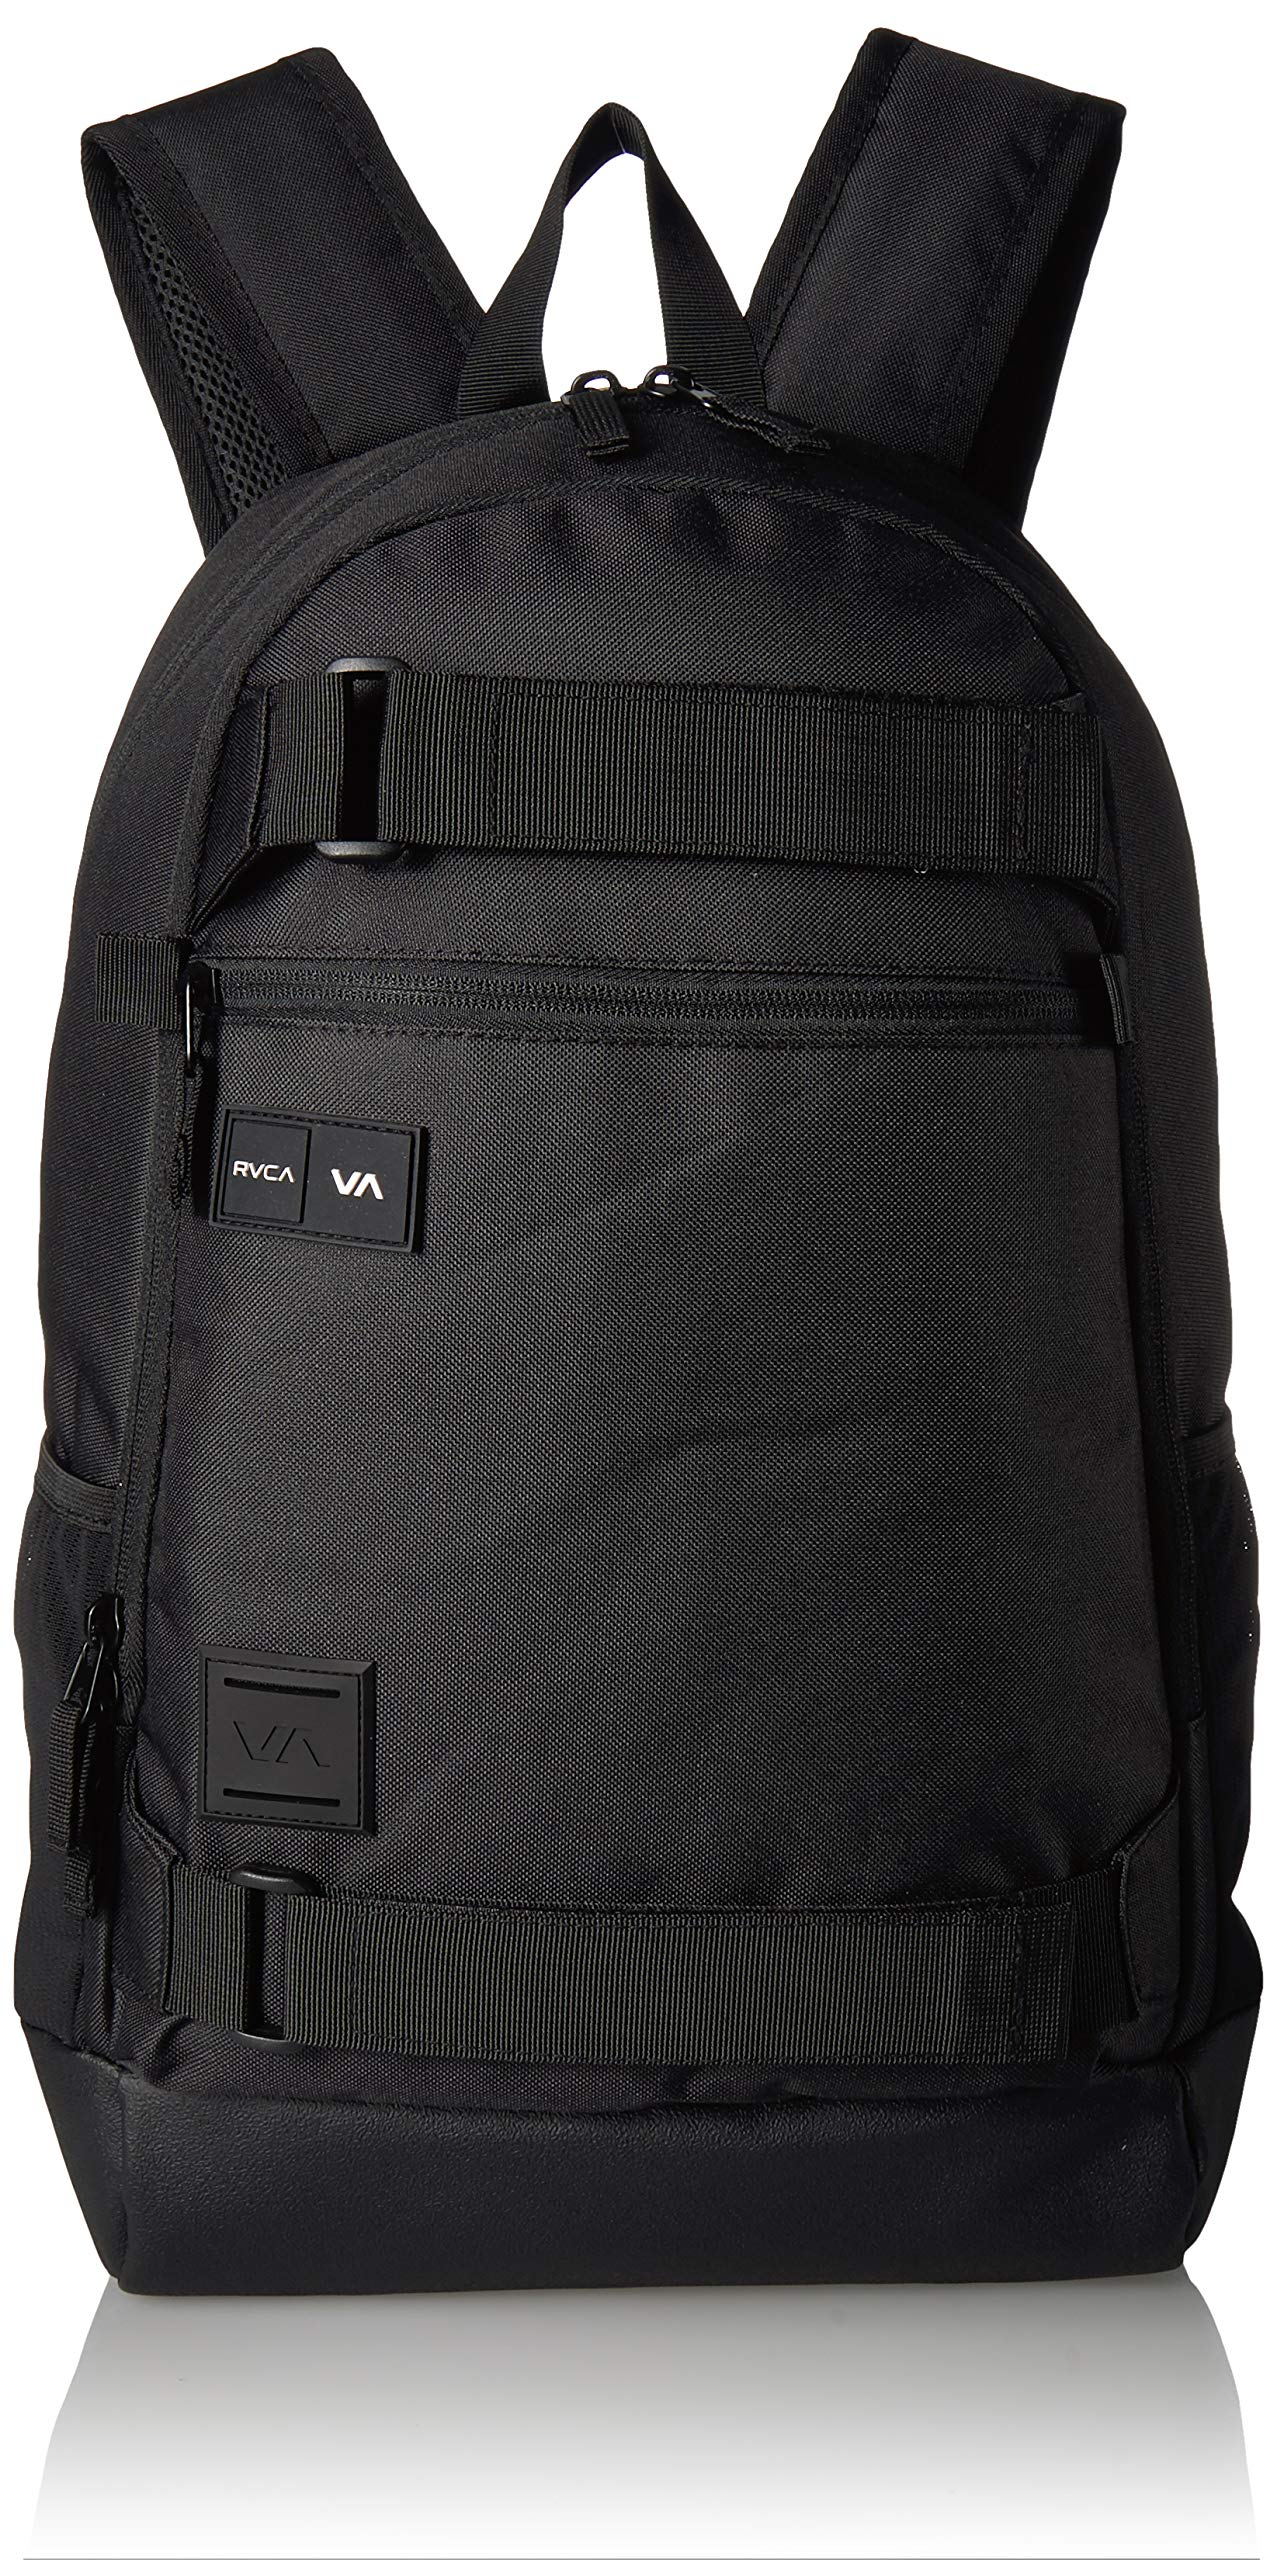 RVCA Men's Curb Skate Backpack, black, ONE SIZE by RVCA